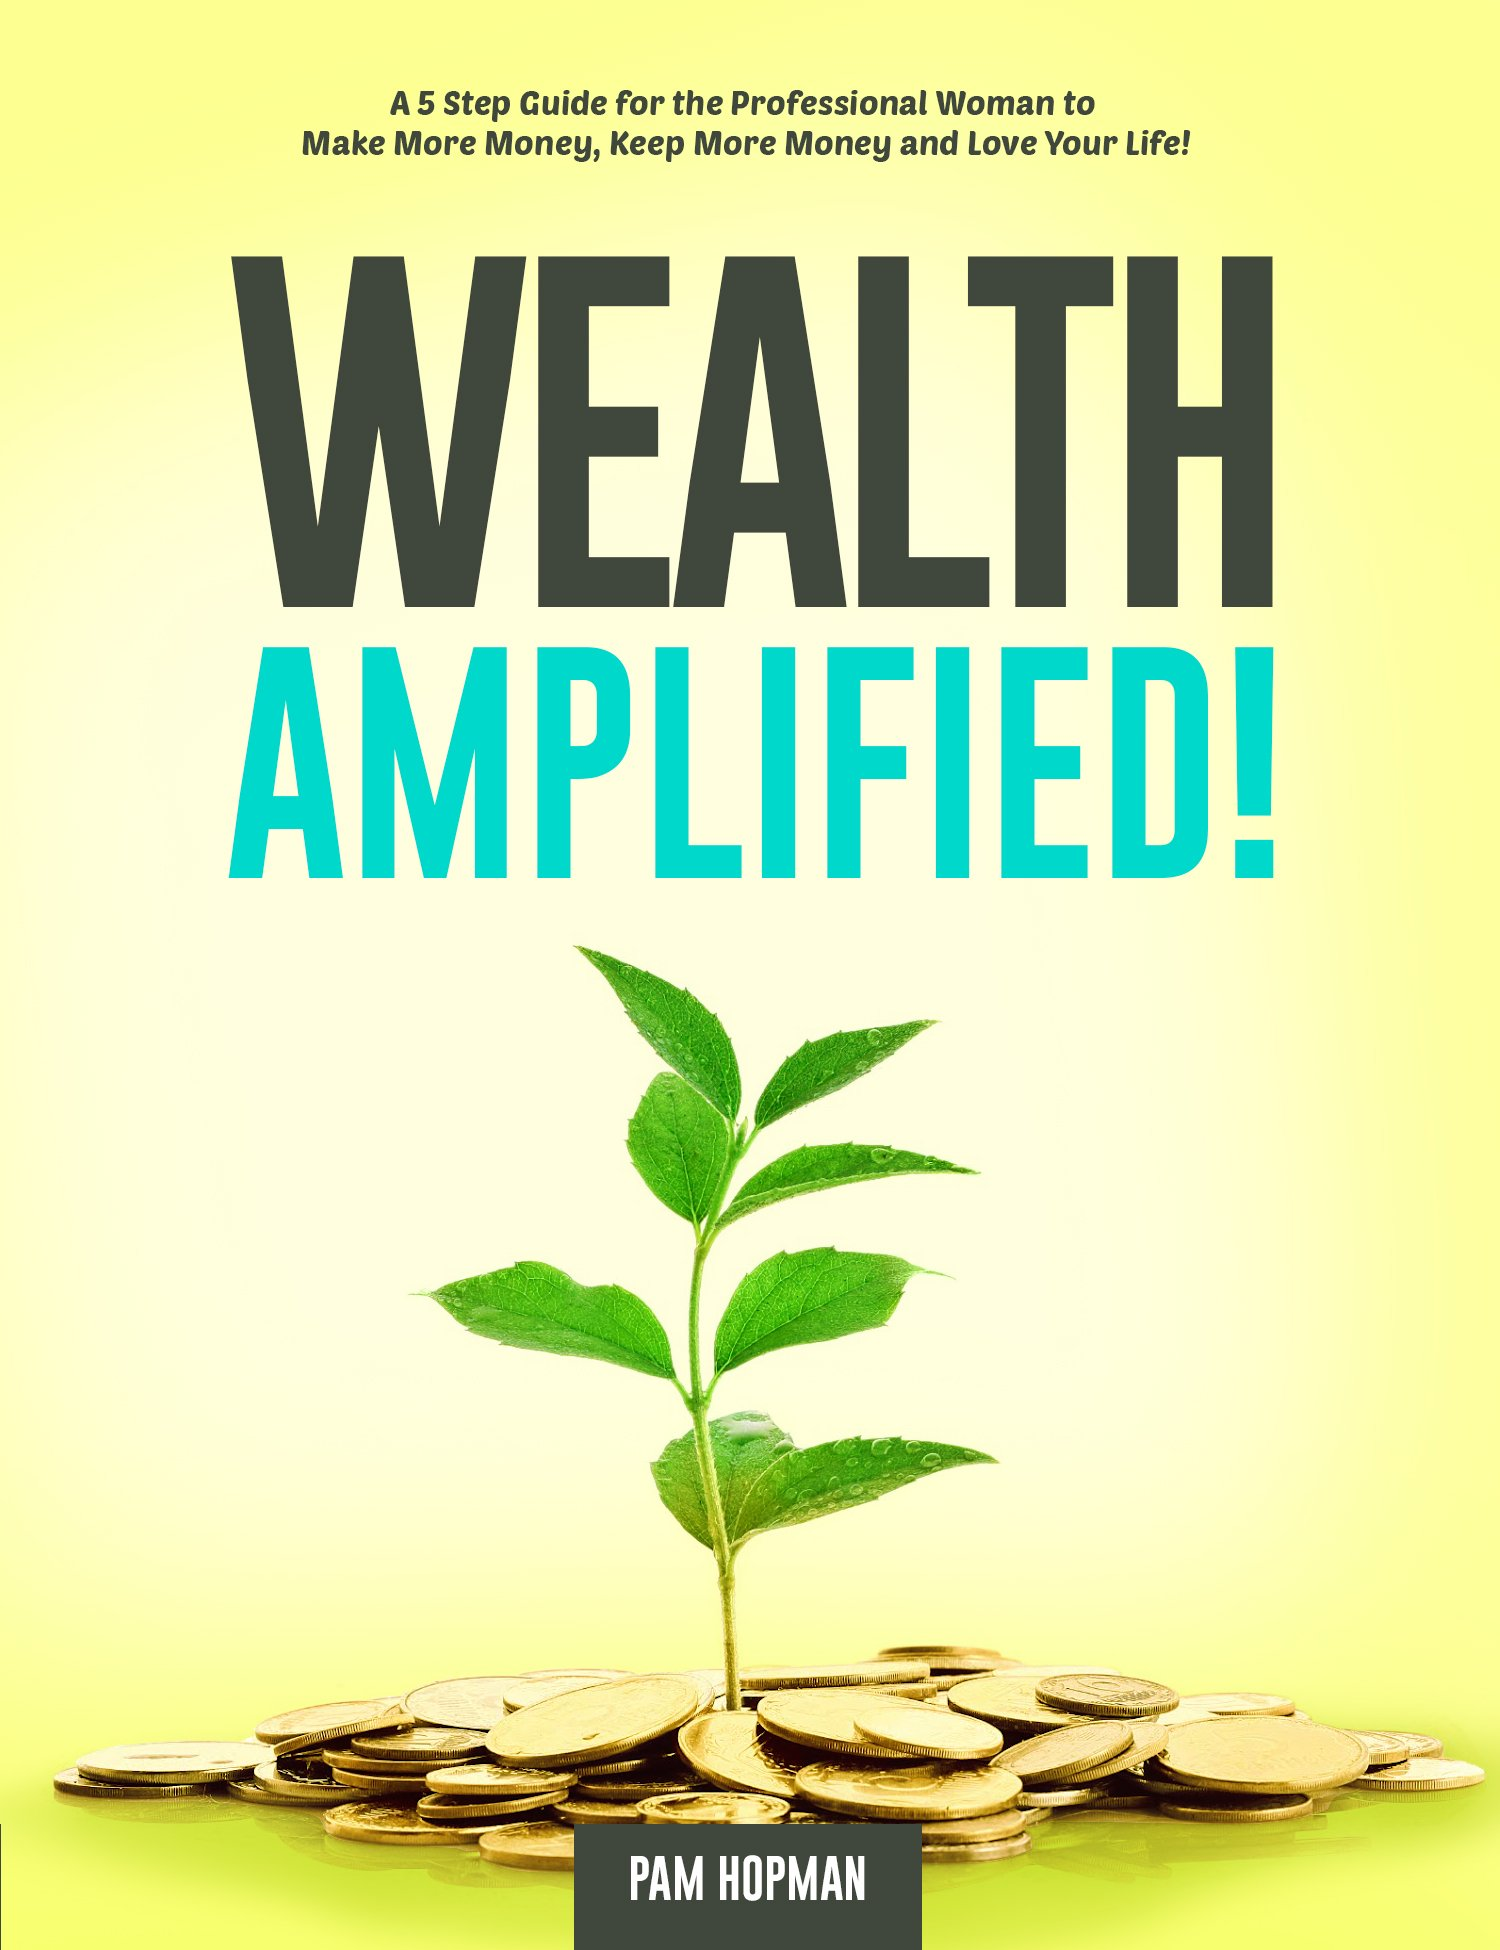 WEALTH AMPLIFIED!: A Five Step Guide for the Professional Woman to Make More Money Keep More Money and Love Your Life